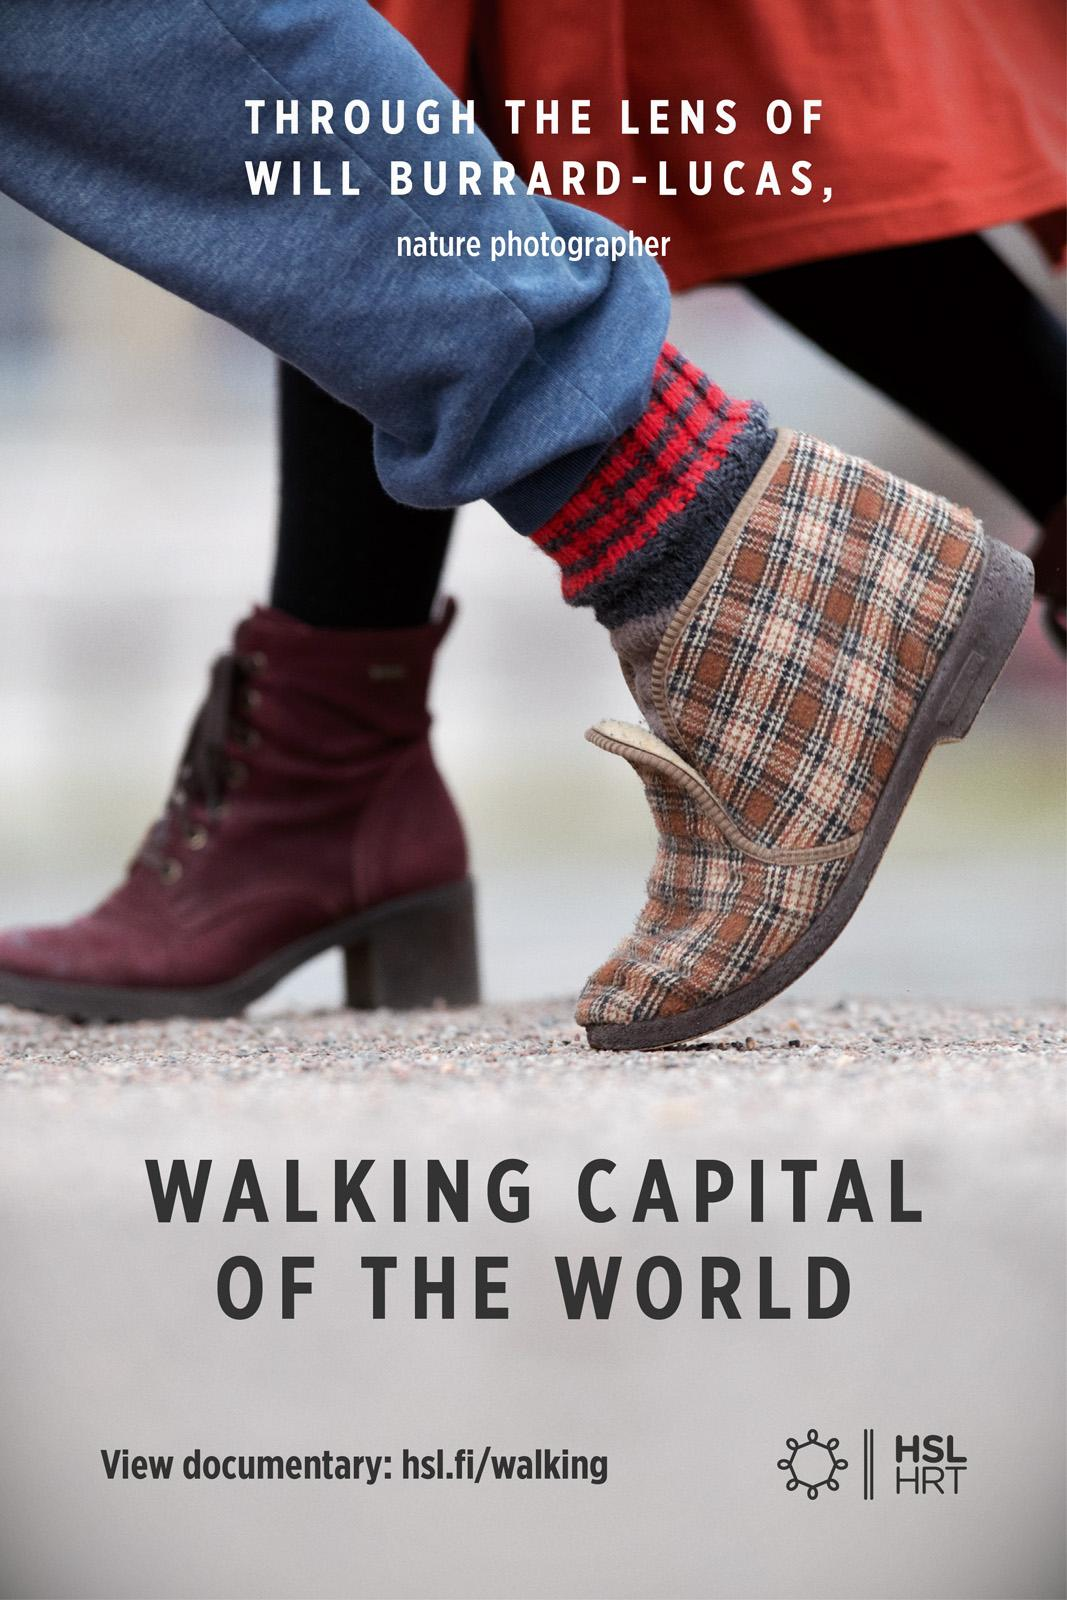 HSL Integrated Ad -  The Walking Capital of the World